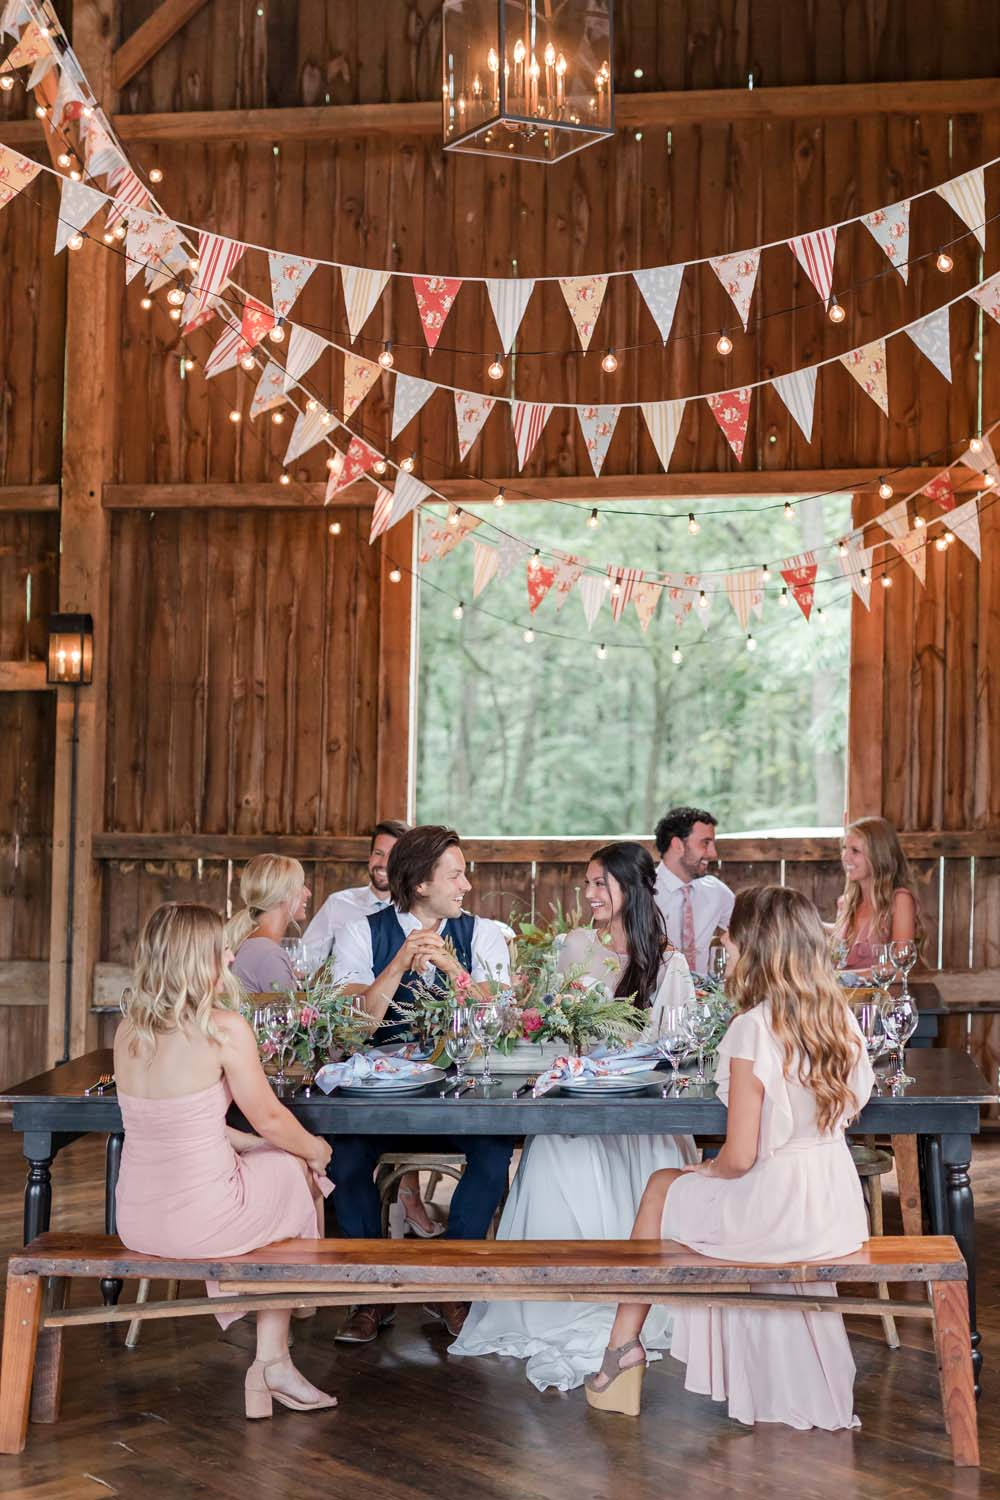 6 Tried-and-True Tips for Throwing a Barn Wedding | Spoonflower Blog